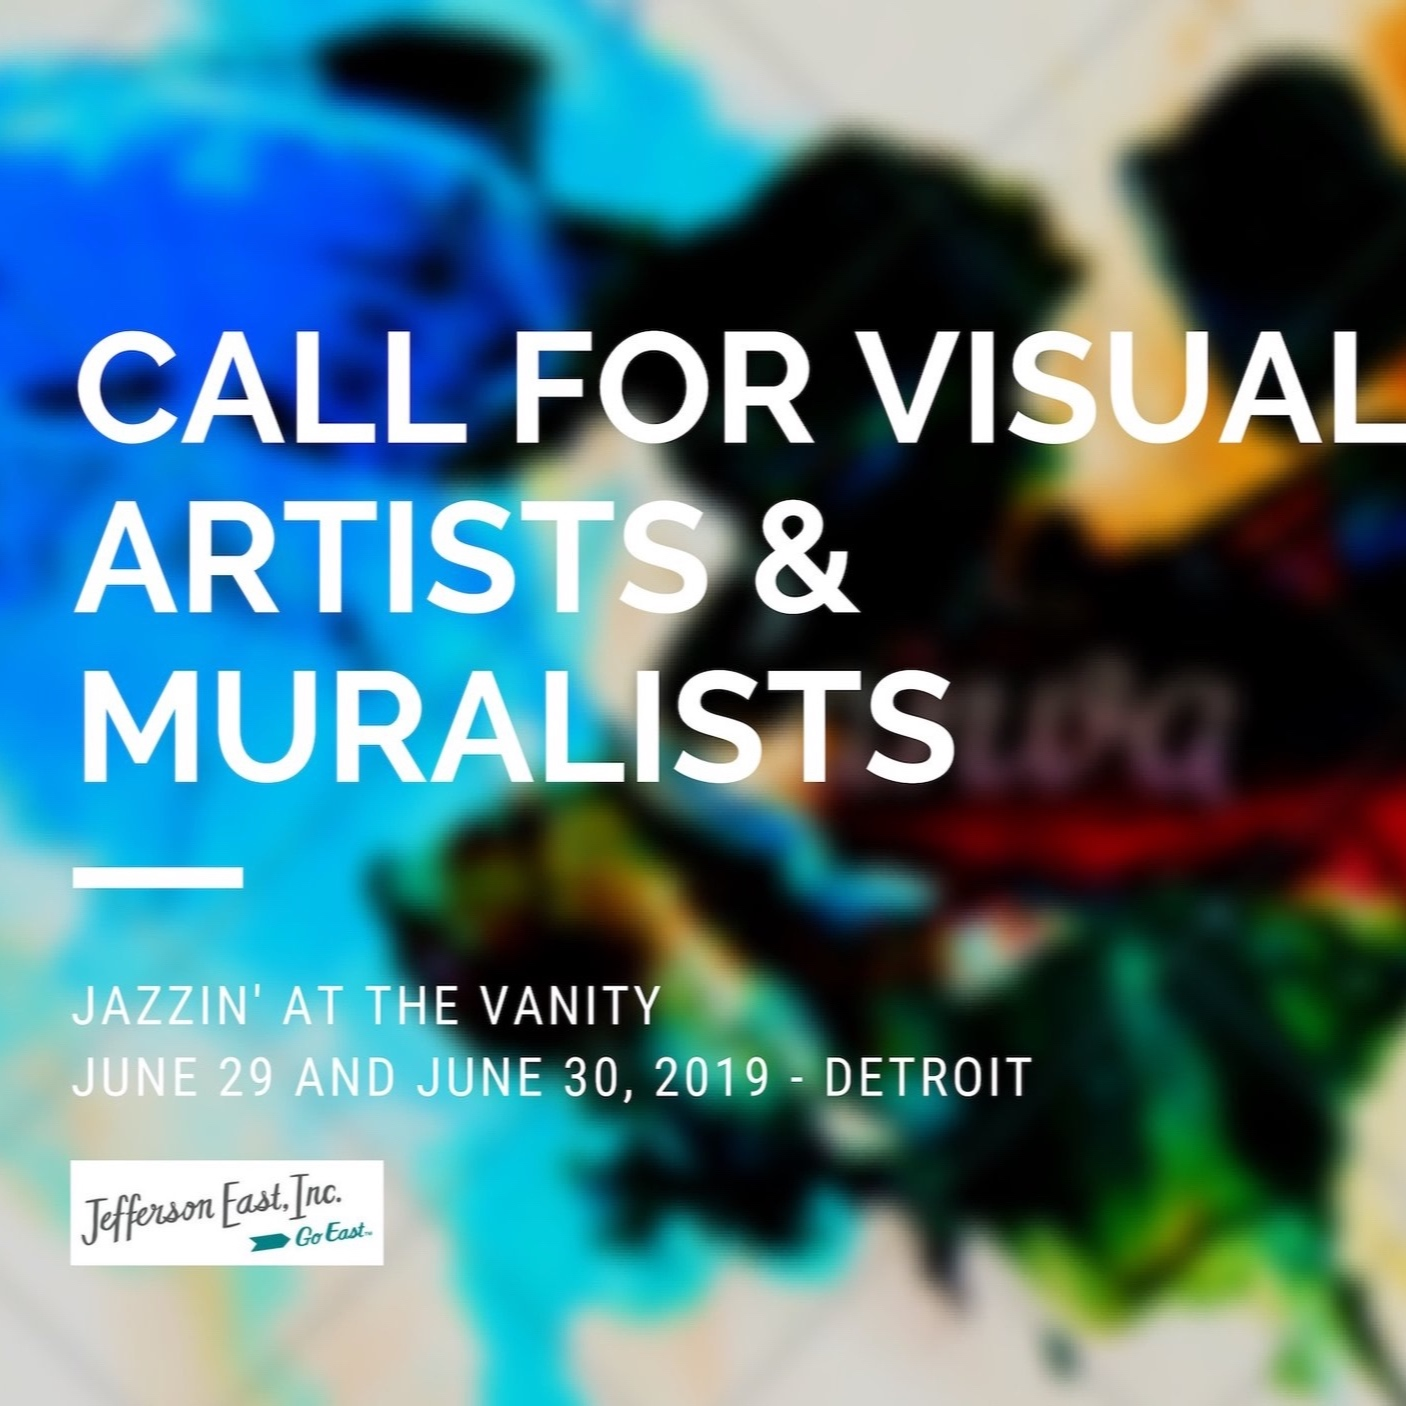 call for visual artists & Muralists.jpg